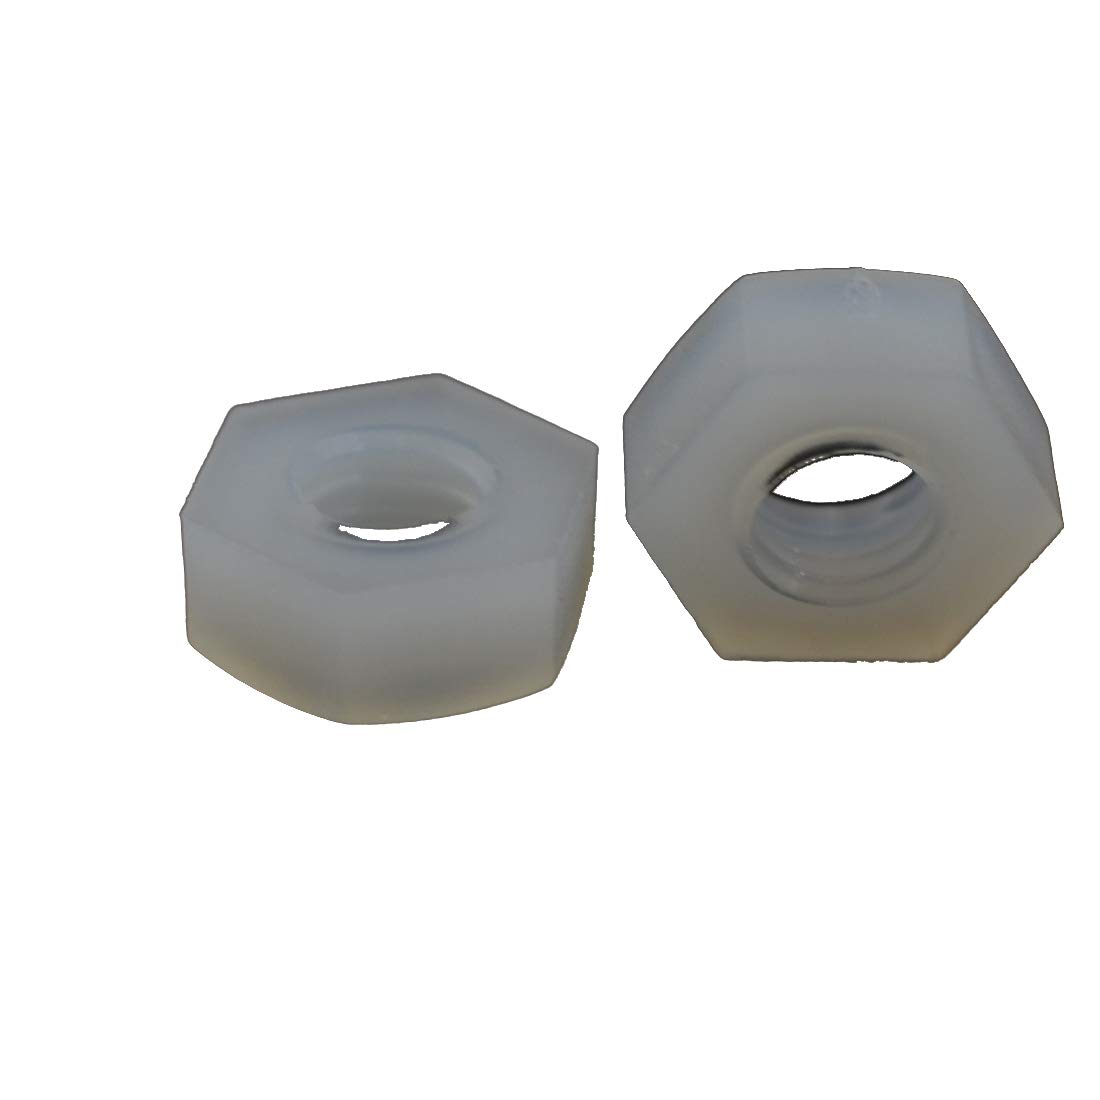 M3X25 XunLiu 100pcs M3 25mm Nylon Hex Standoff Spacer Replacement Female to Female